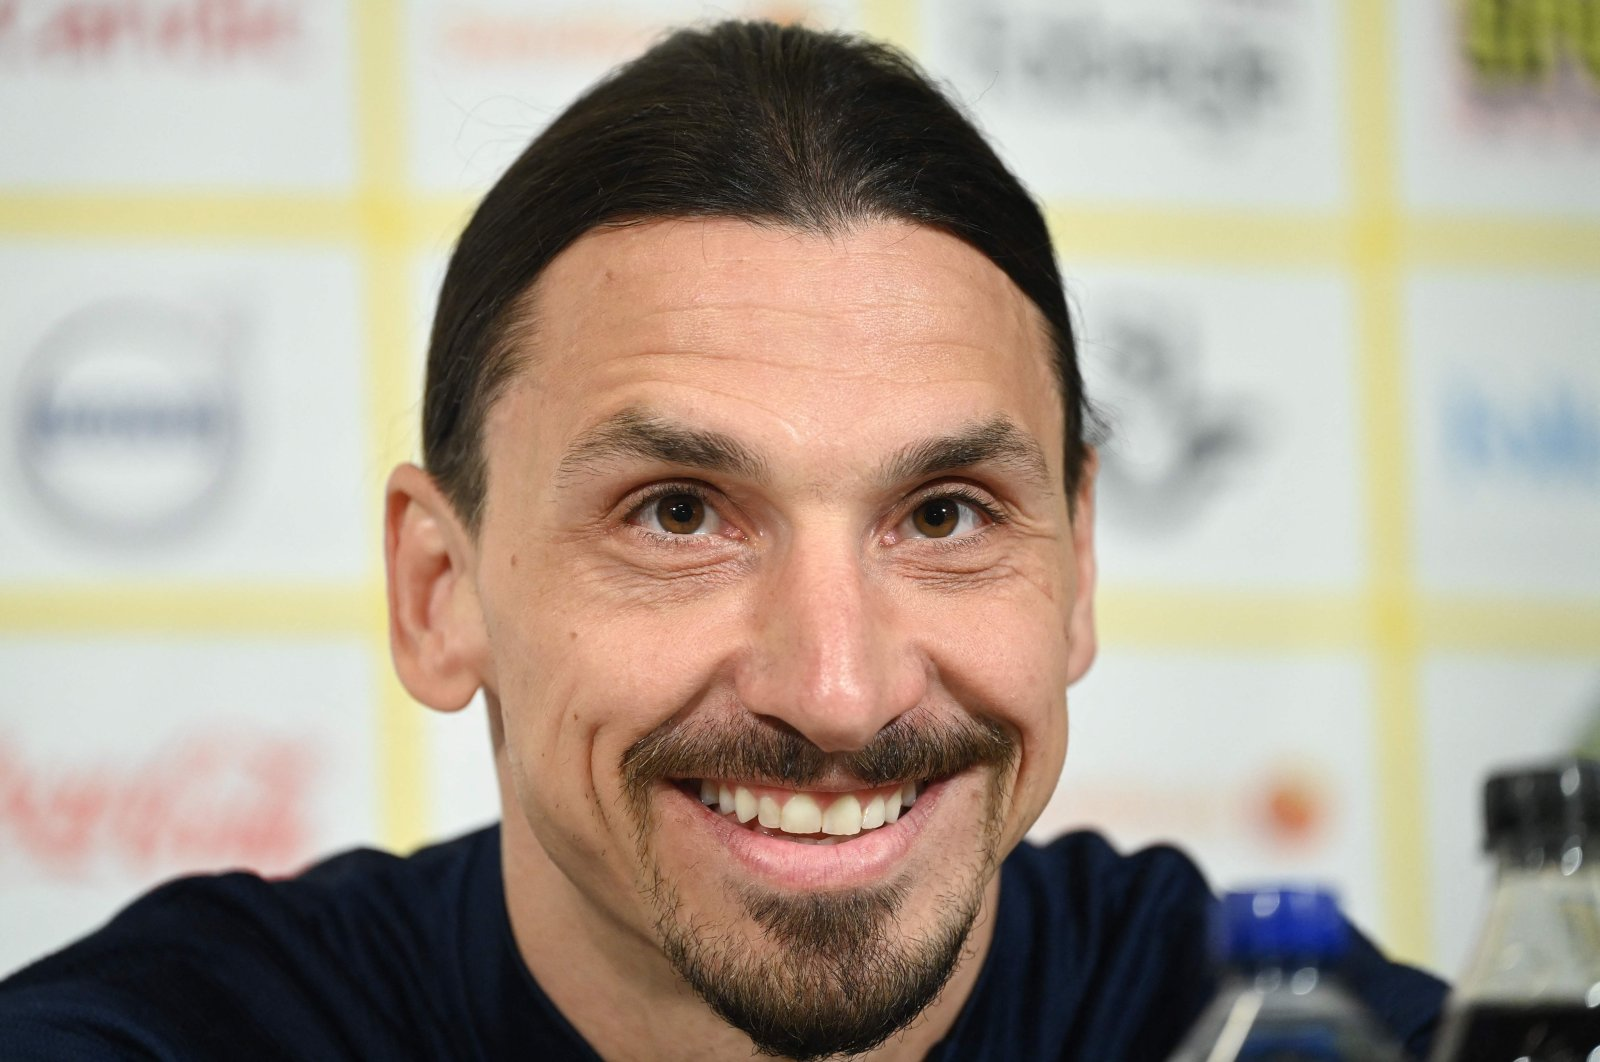 Sweden's forward Zlatan Ibrahimovic smiles as he addresses a press conference prior to the World Cup qualifier of Sweden vs Georgia match, Stockholm, Sweden, March 22, 2021. (AFP Photo)